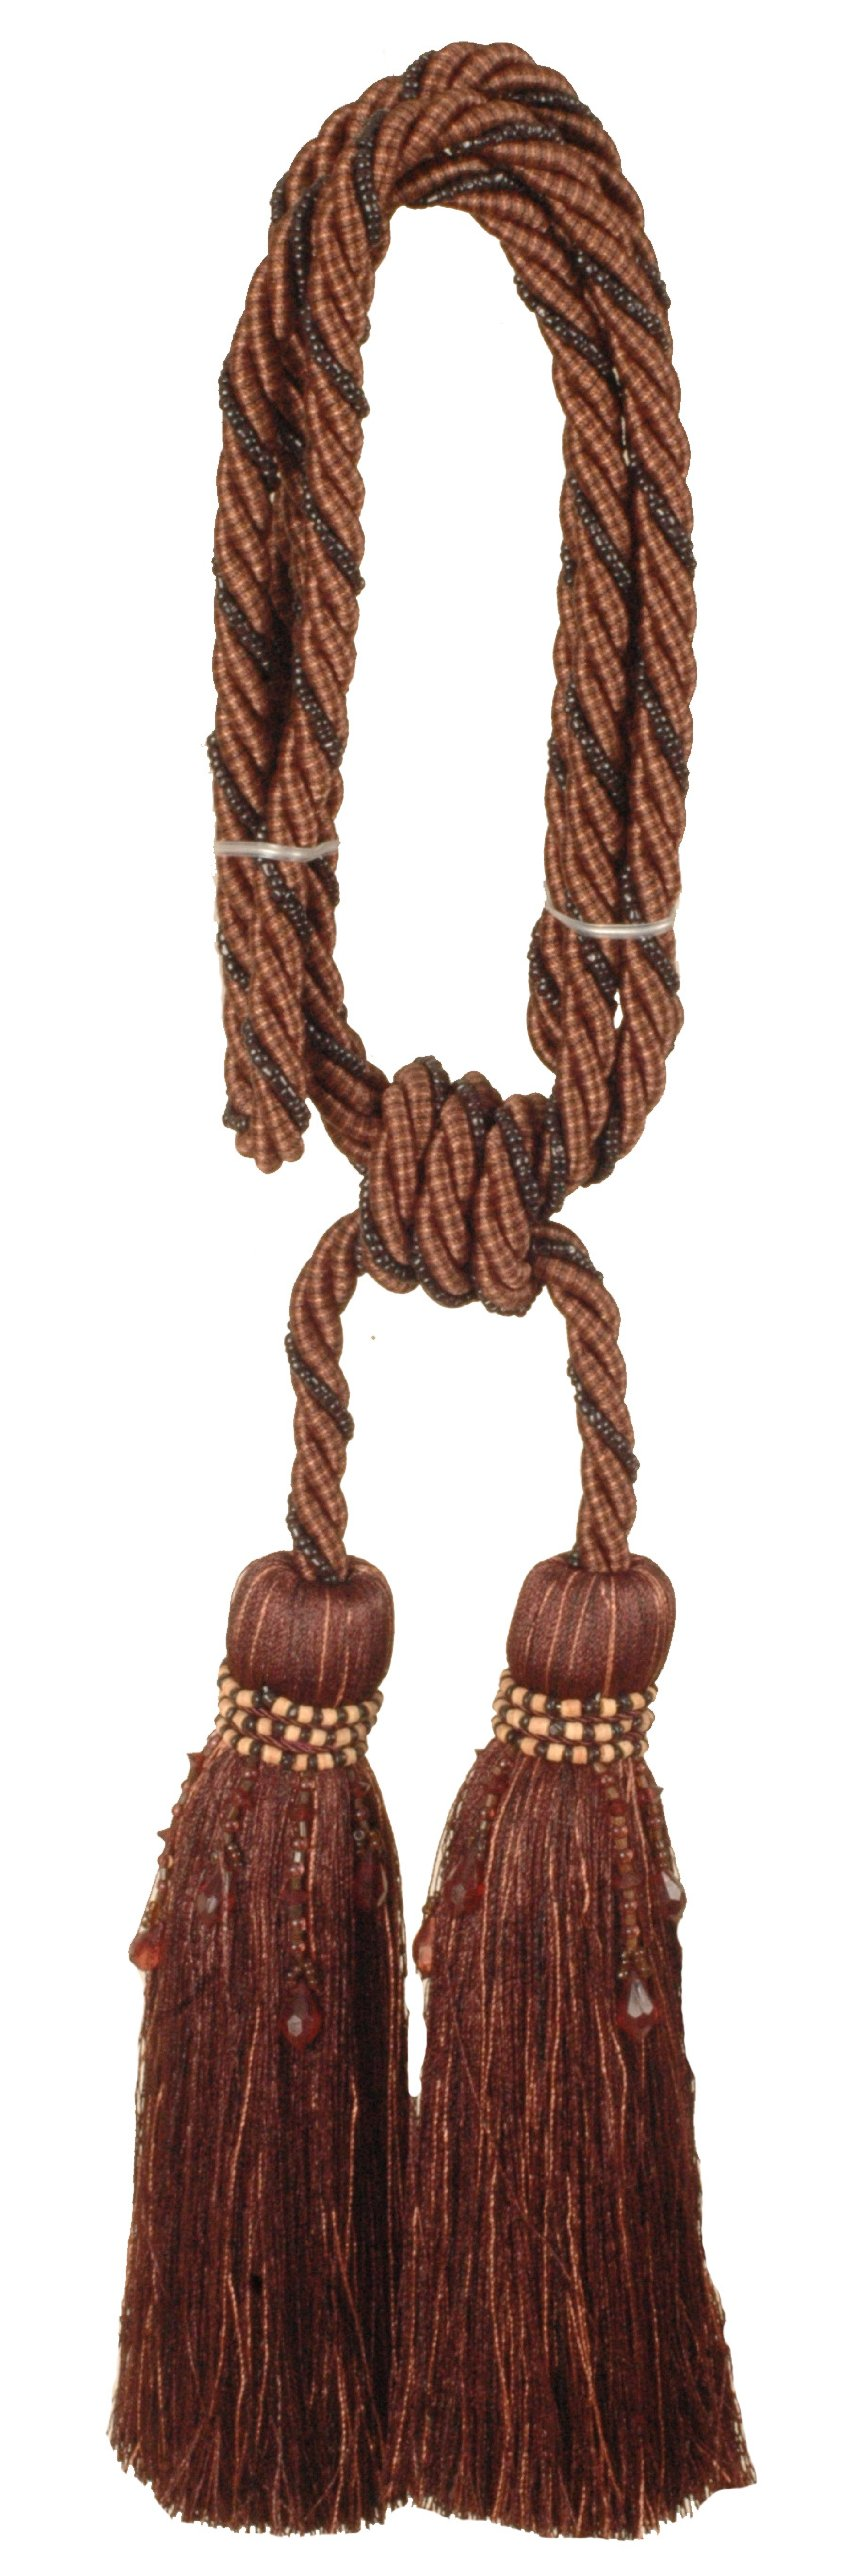 India House 76212 Milano Tieback with 8-Inch Double Tassel and 36-Inch Cord, Chocolate Mix